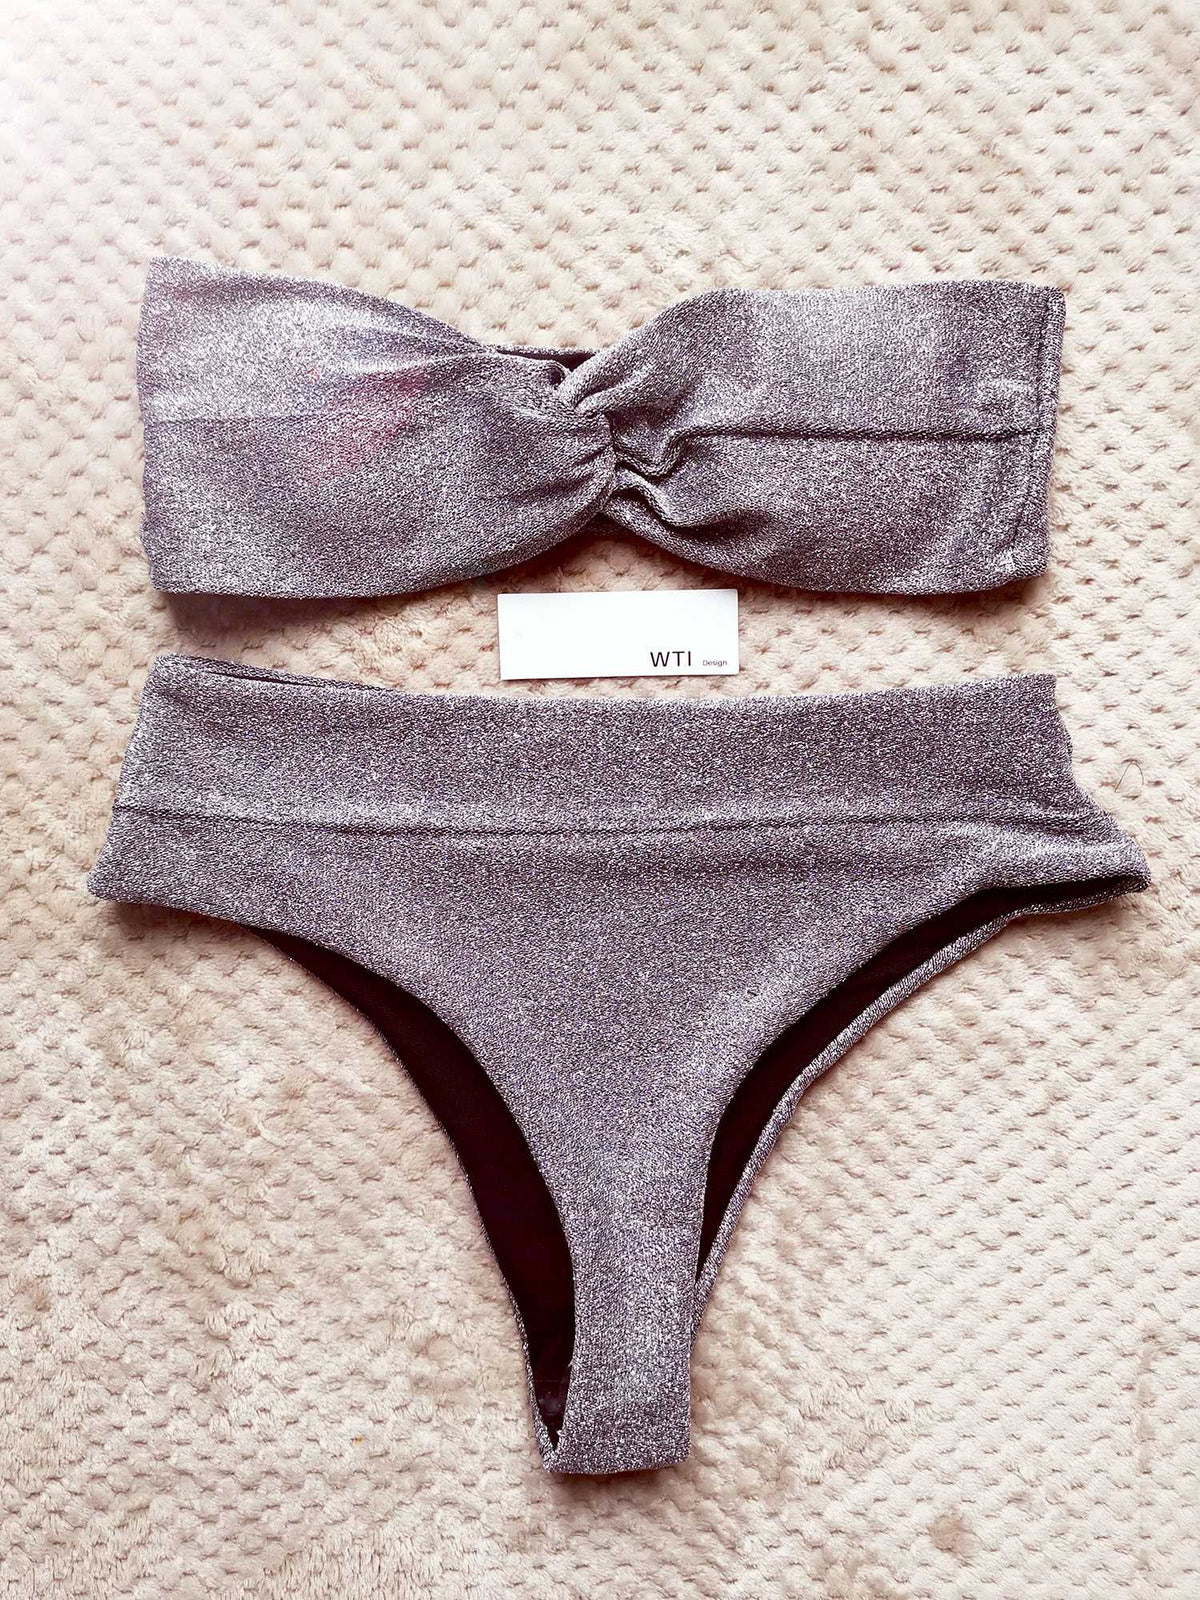 Silver Knit Twisted Bandeaux High Waisted Bikini Swimsuit - worthtryit.com